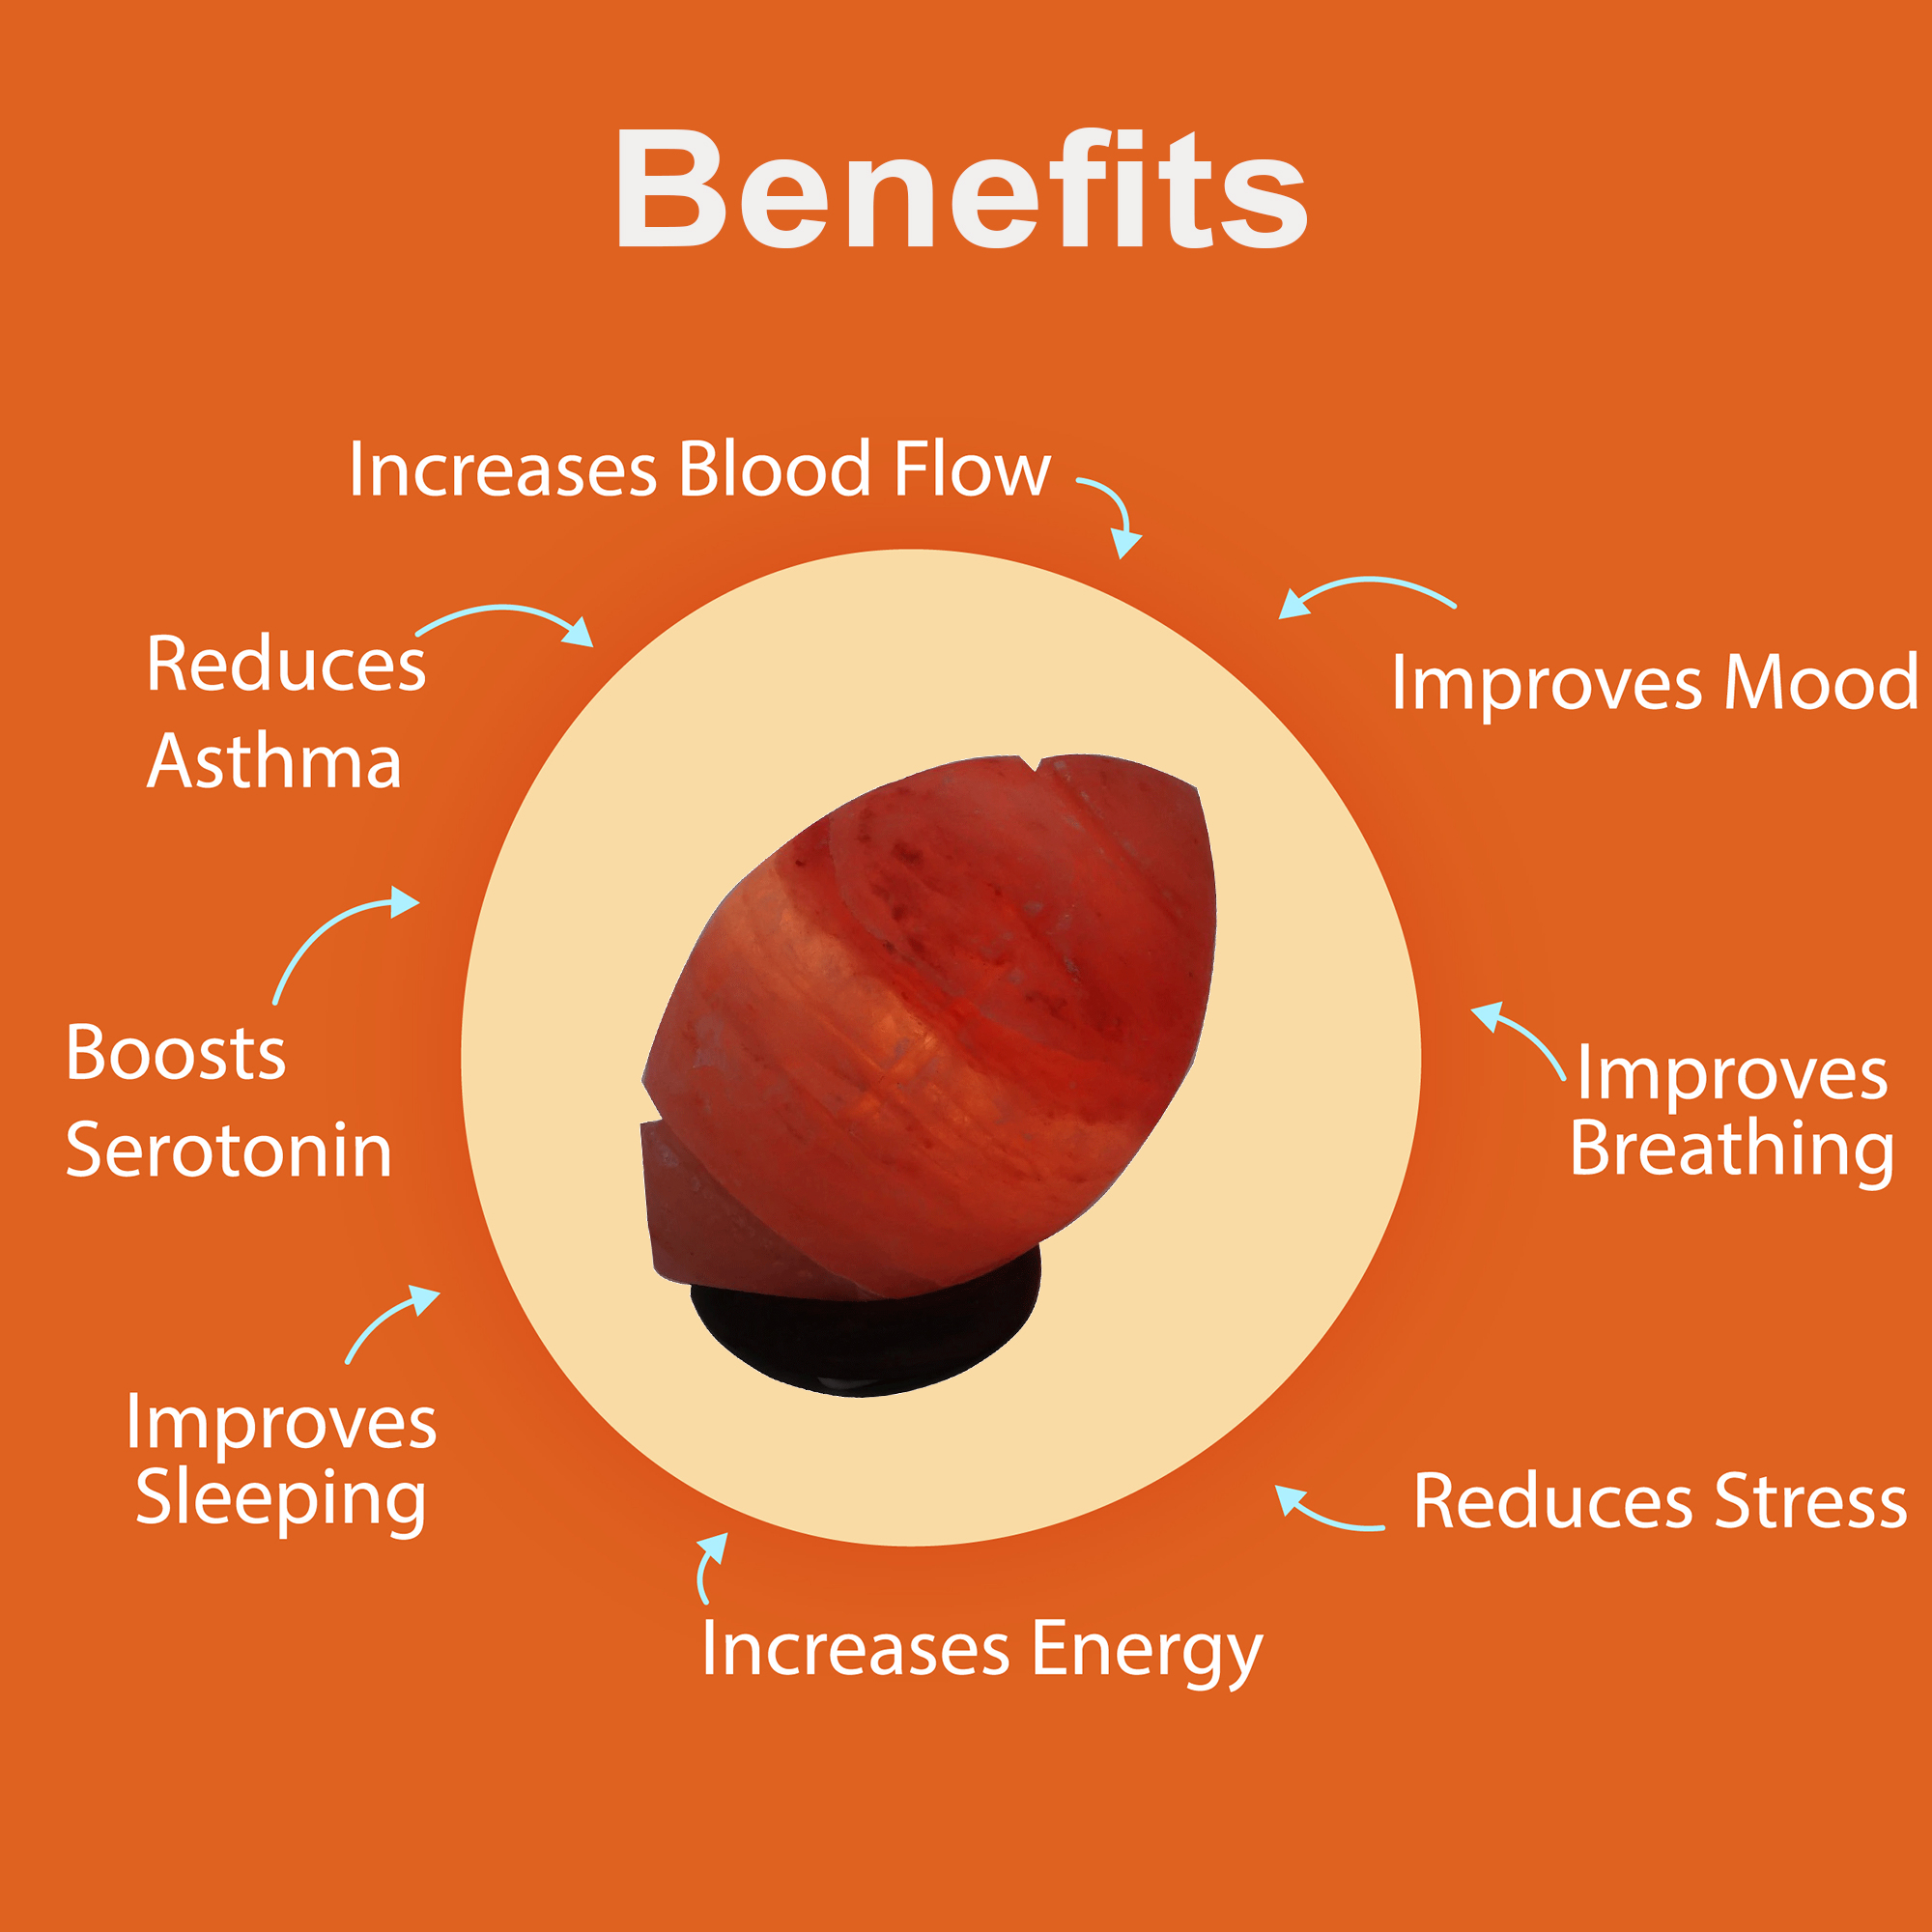 7 benefits 42 - Saltpur Himalayan Salts